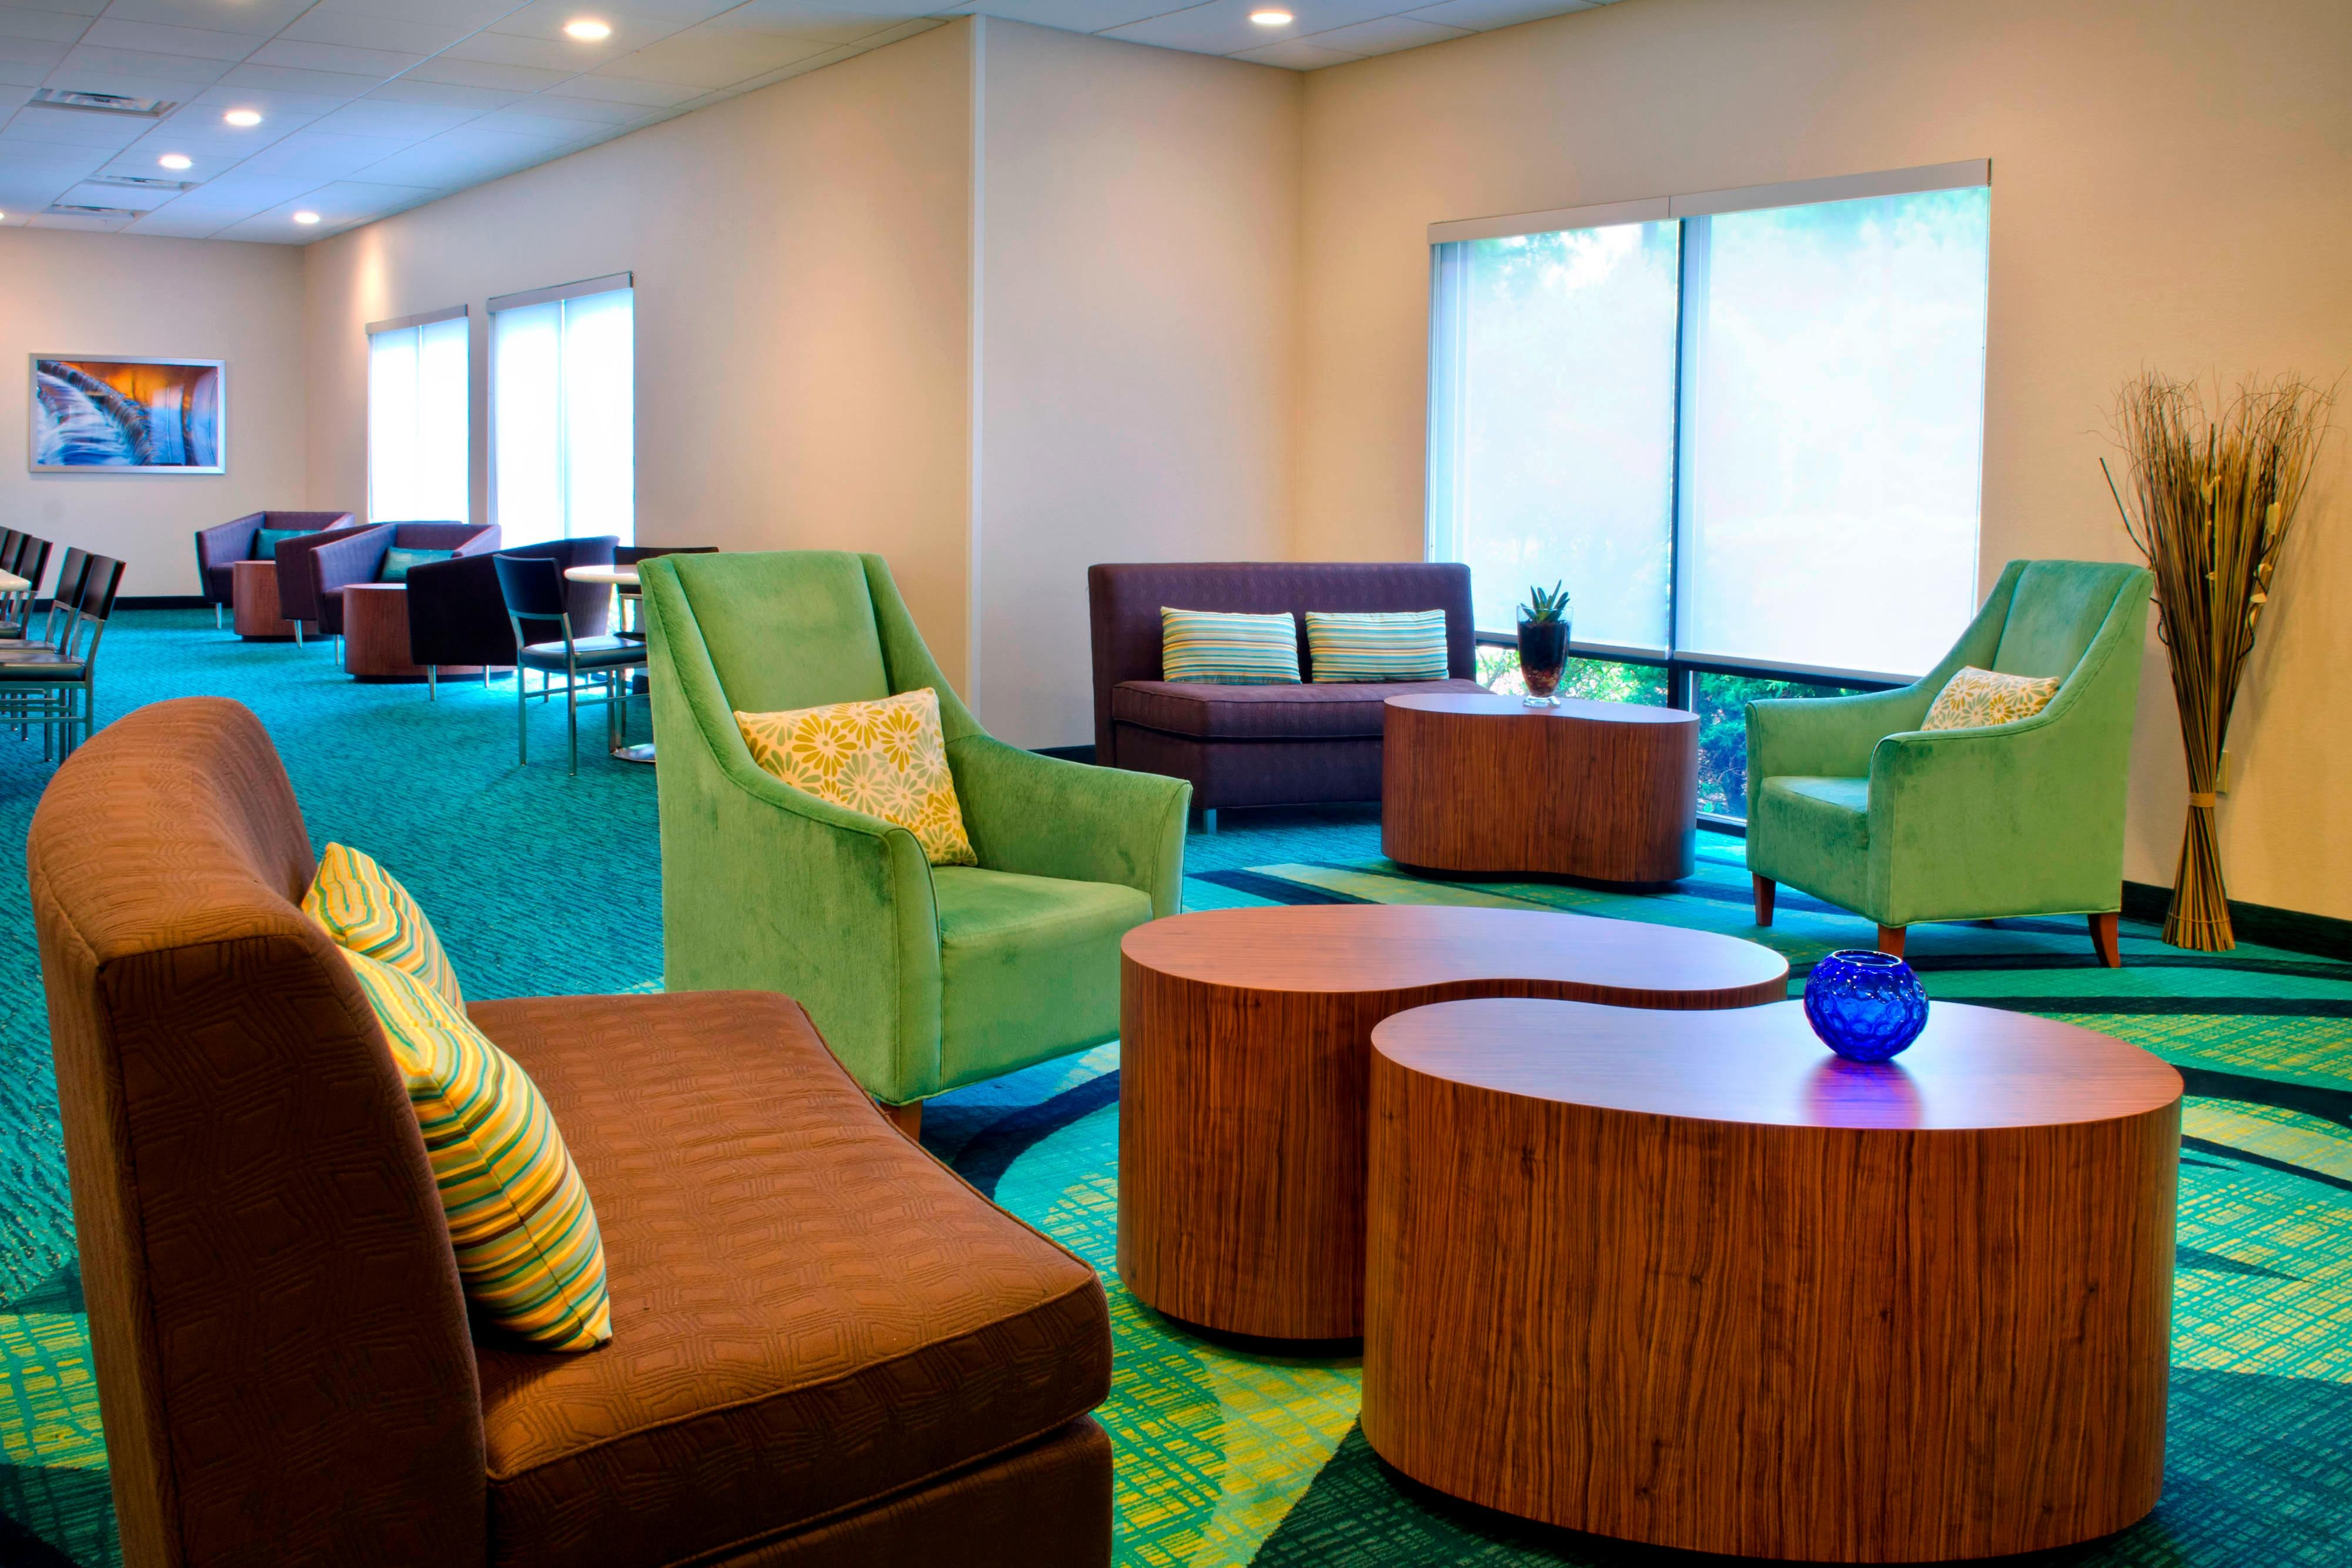 Andover Hotels - Lobby Lounge